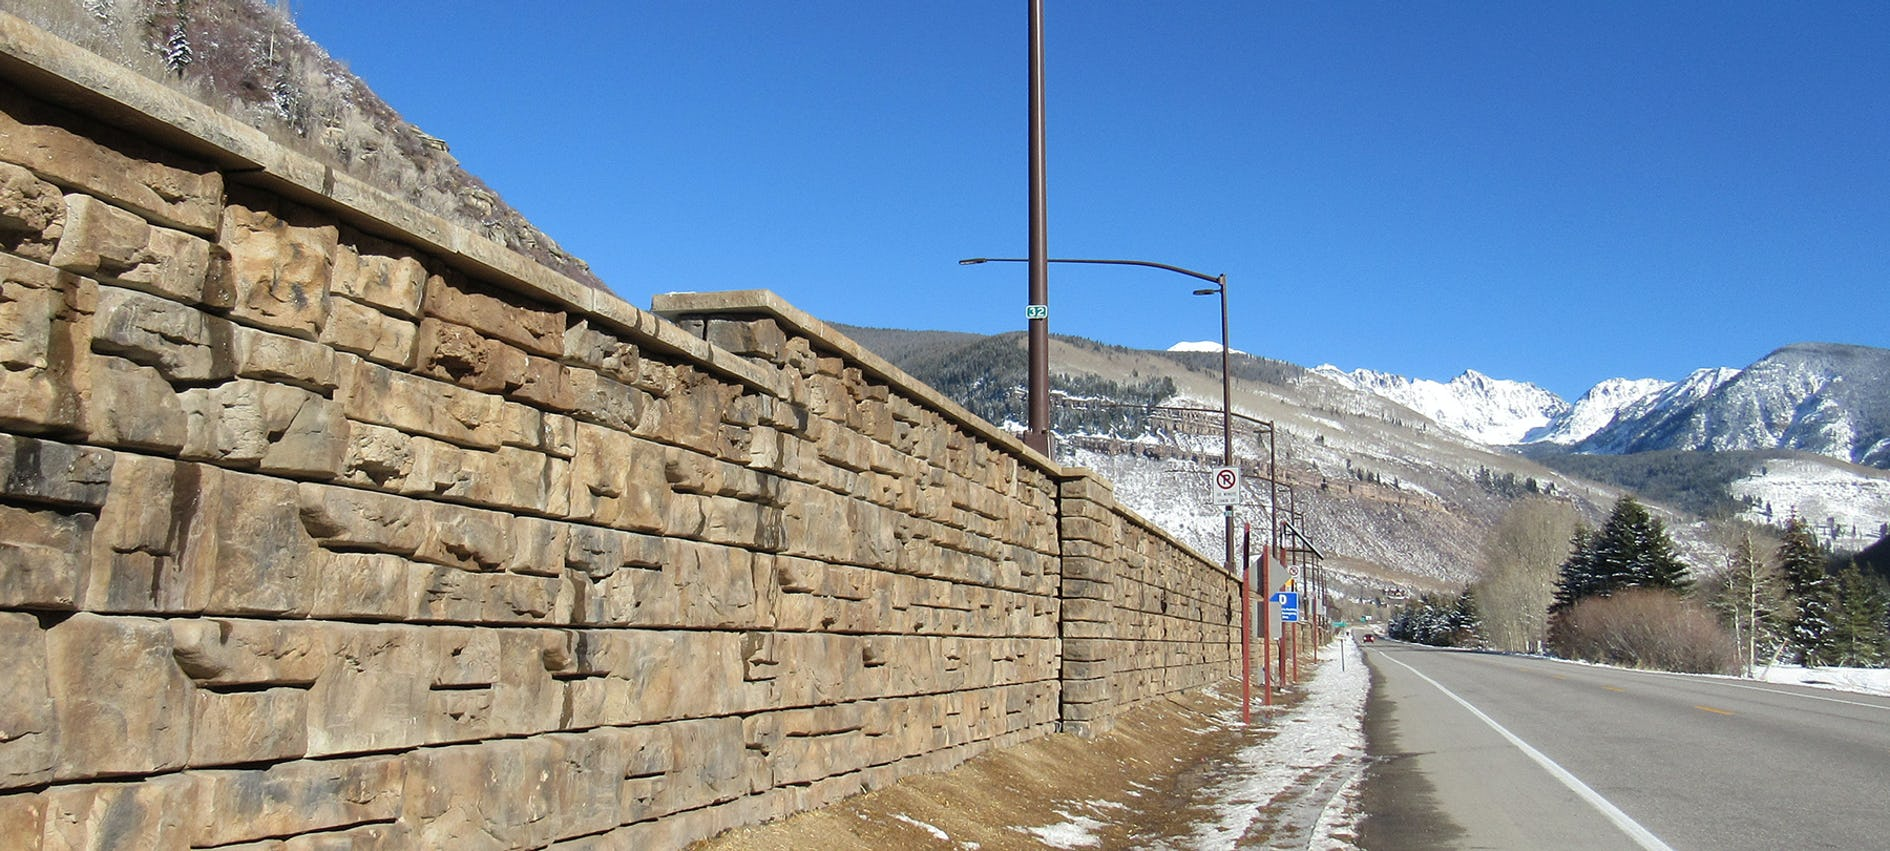 RR_Case-187_Signature-Stone_Vail-Chain-Up-Station_3.jpg